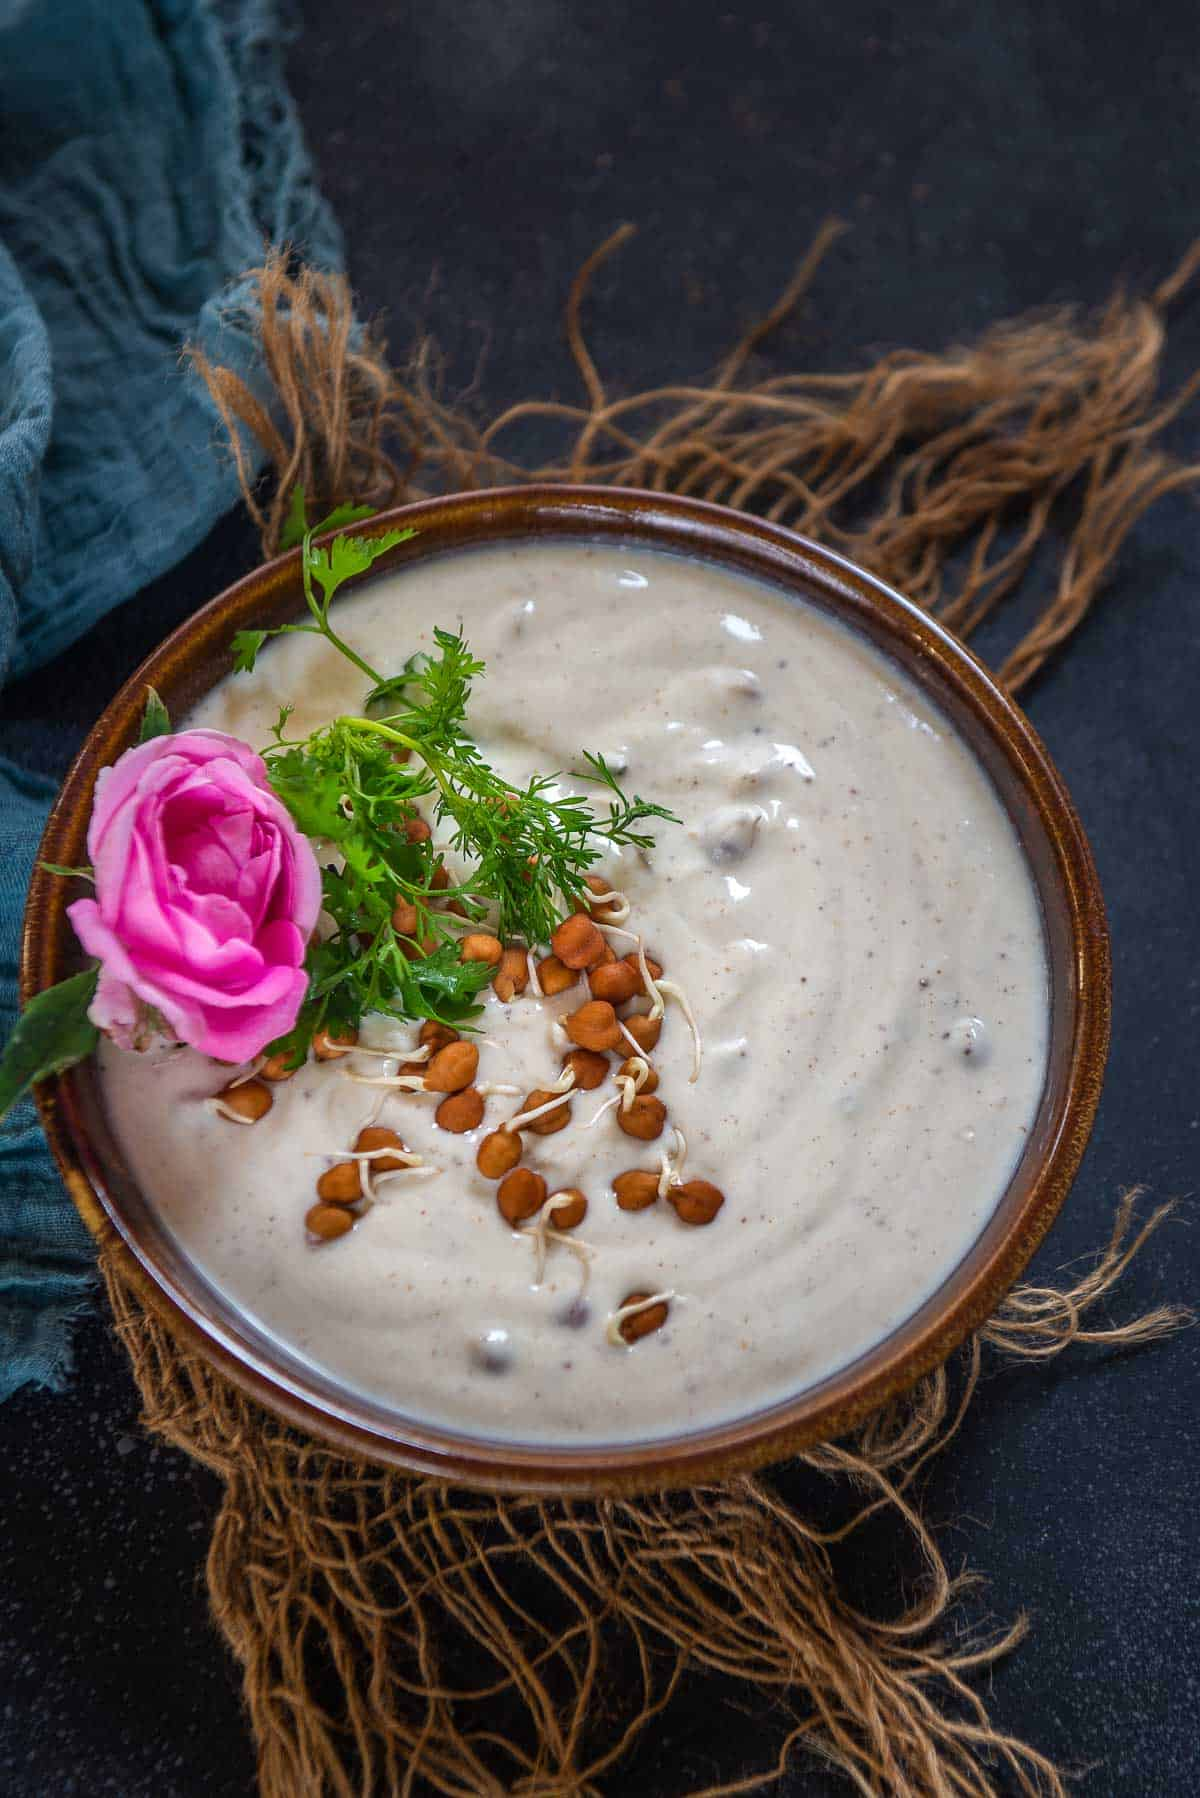 Sprouted chickpea raita served in a bowl.